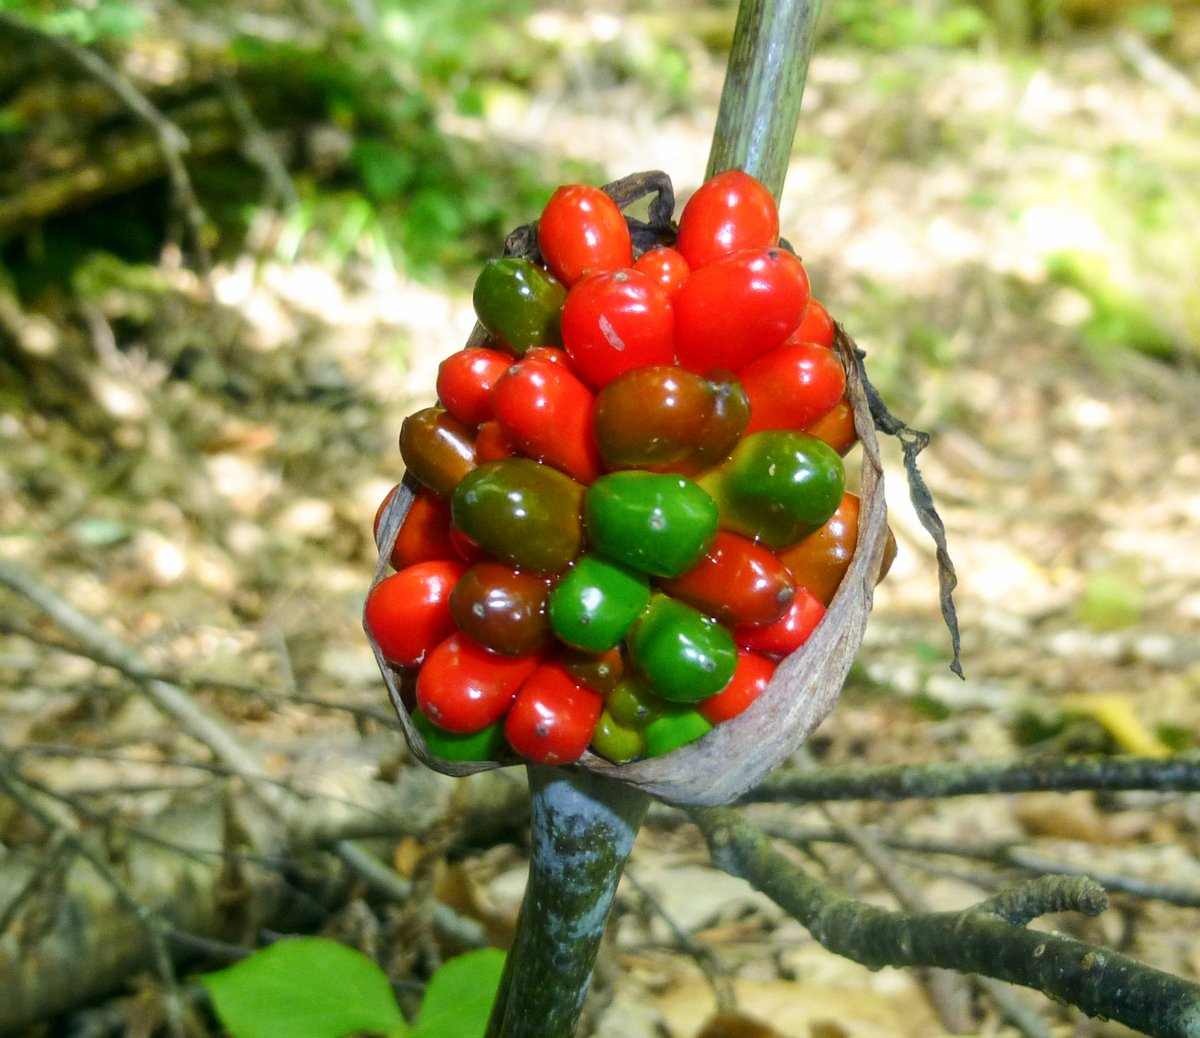 7. Jack in the Pulpit Berries